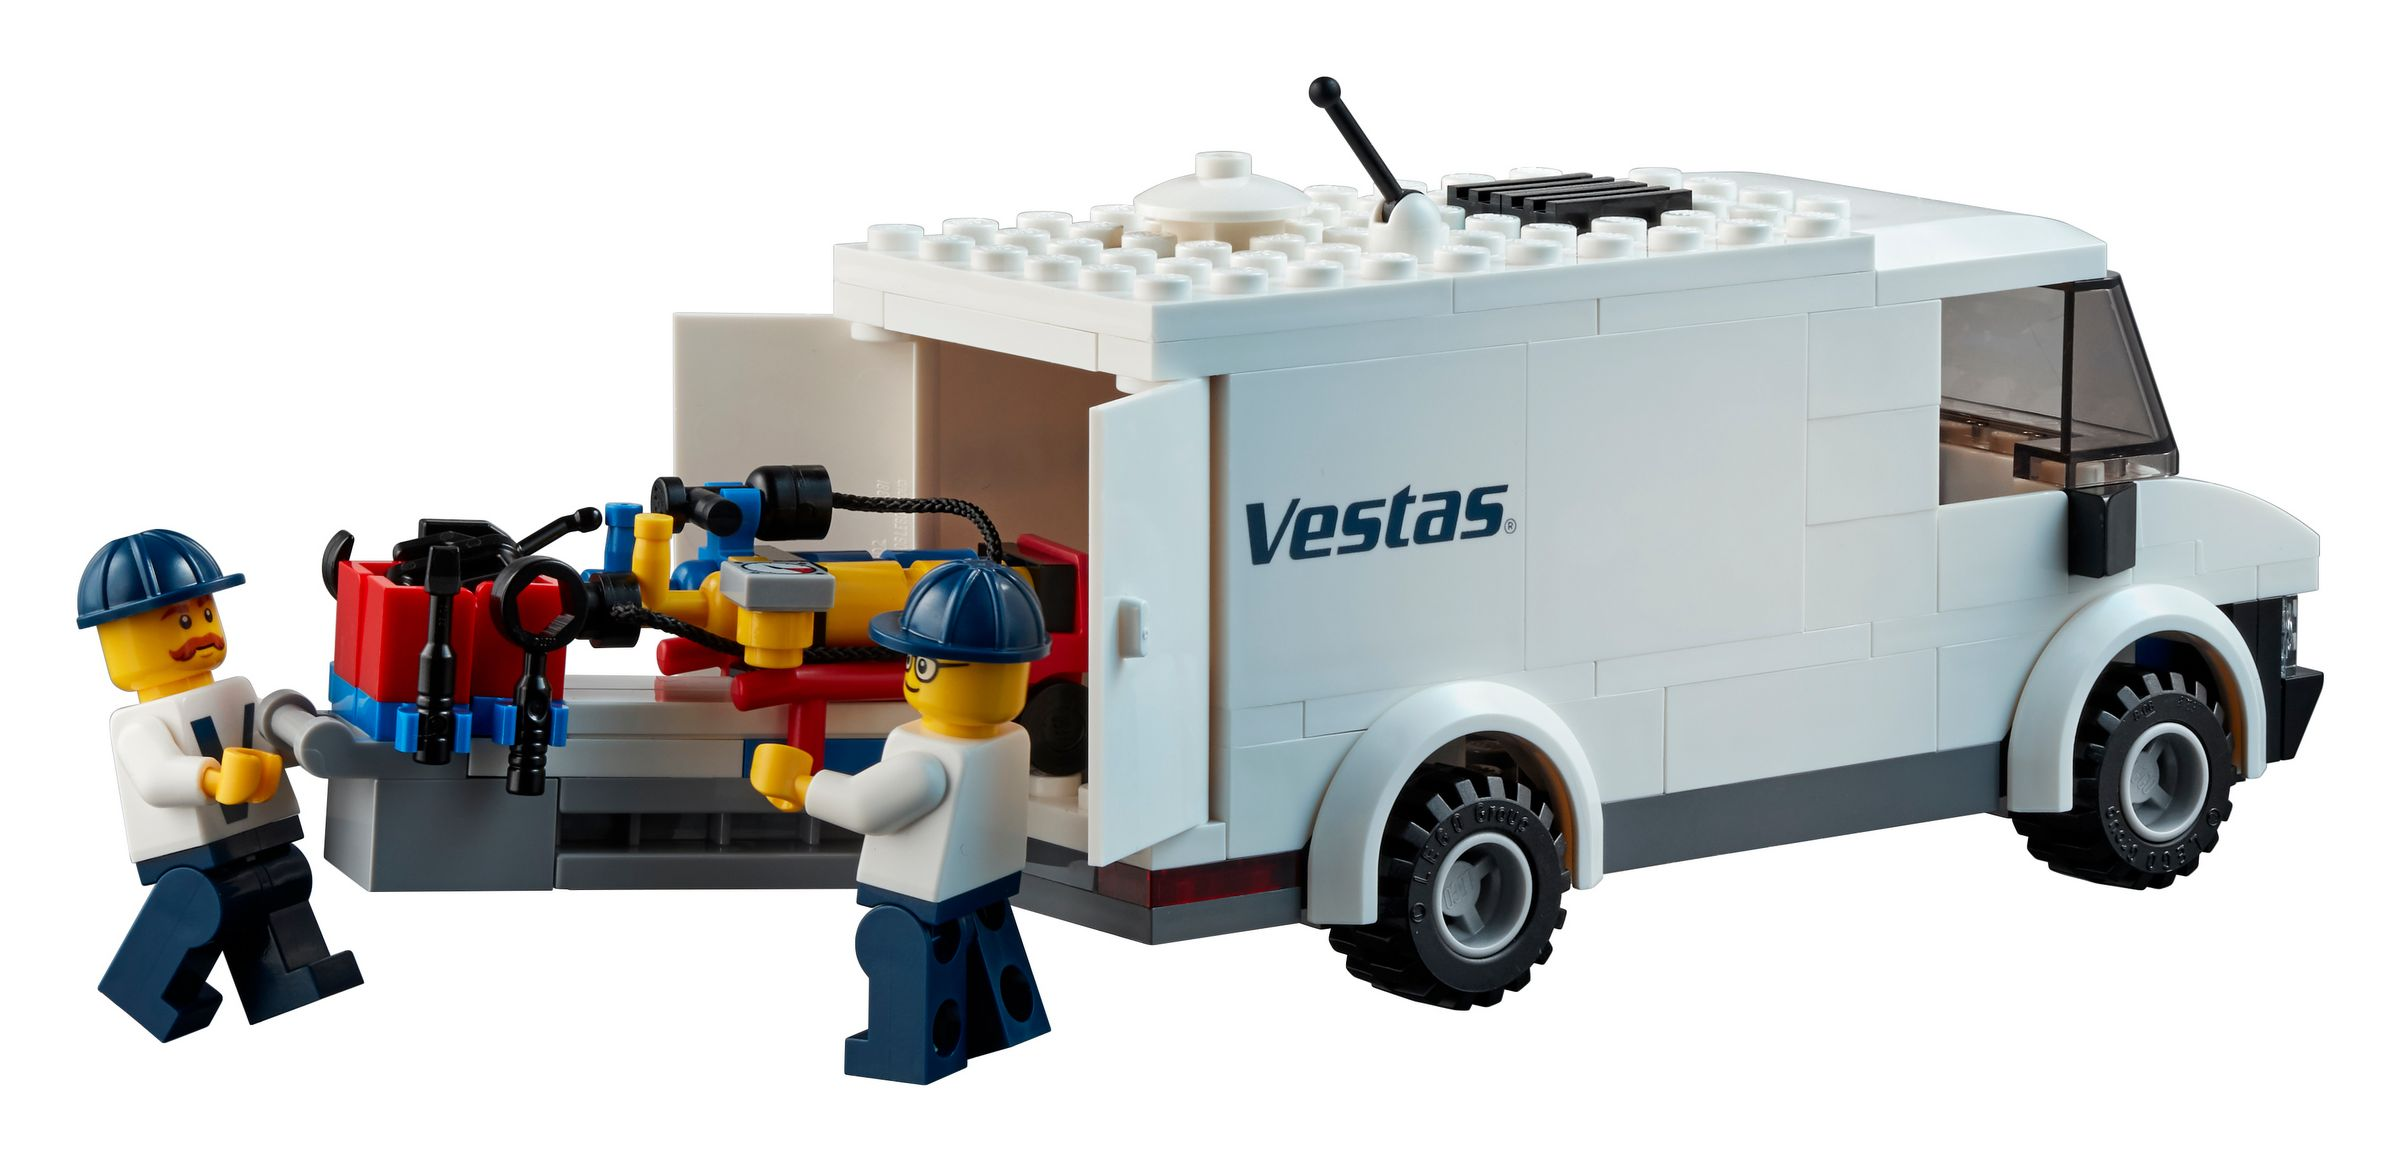 LEGO Advanced Models 10268 Vestas® Windkraftanlage LEGO_10268_alt14.jpg